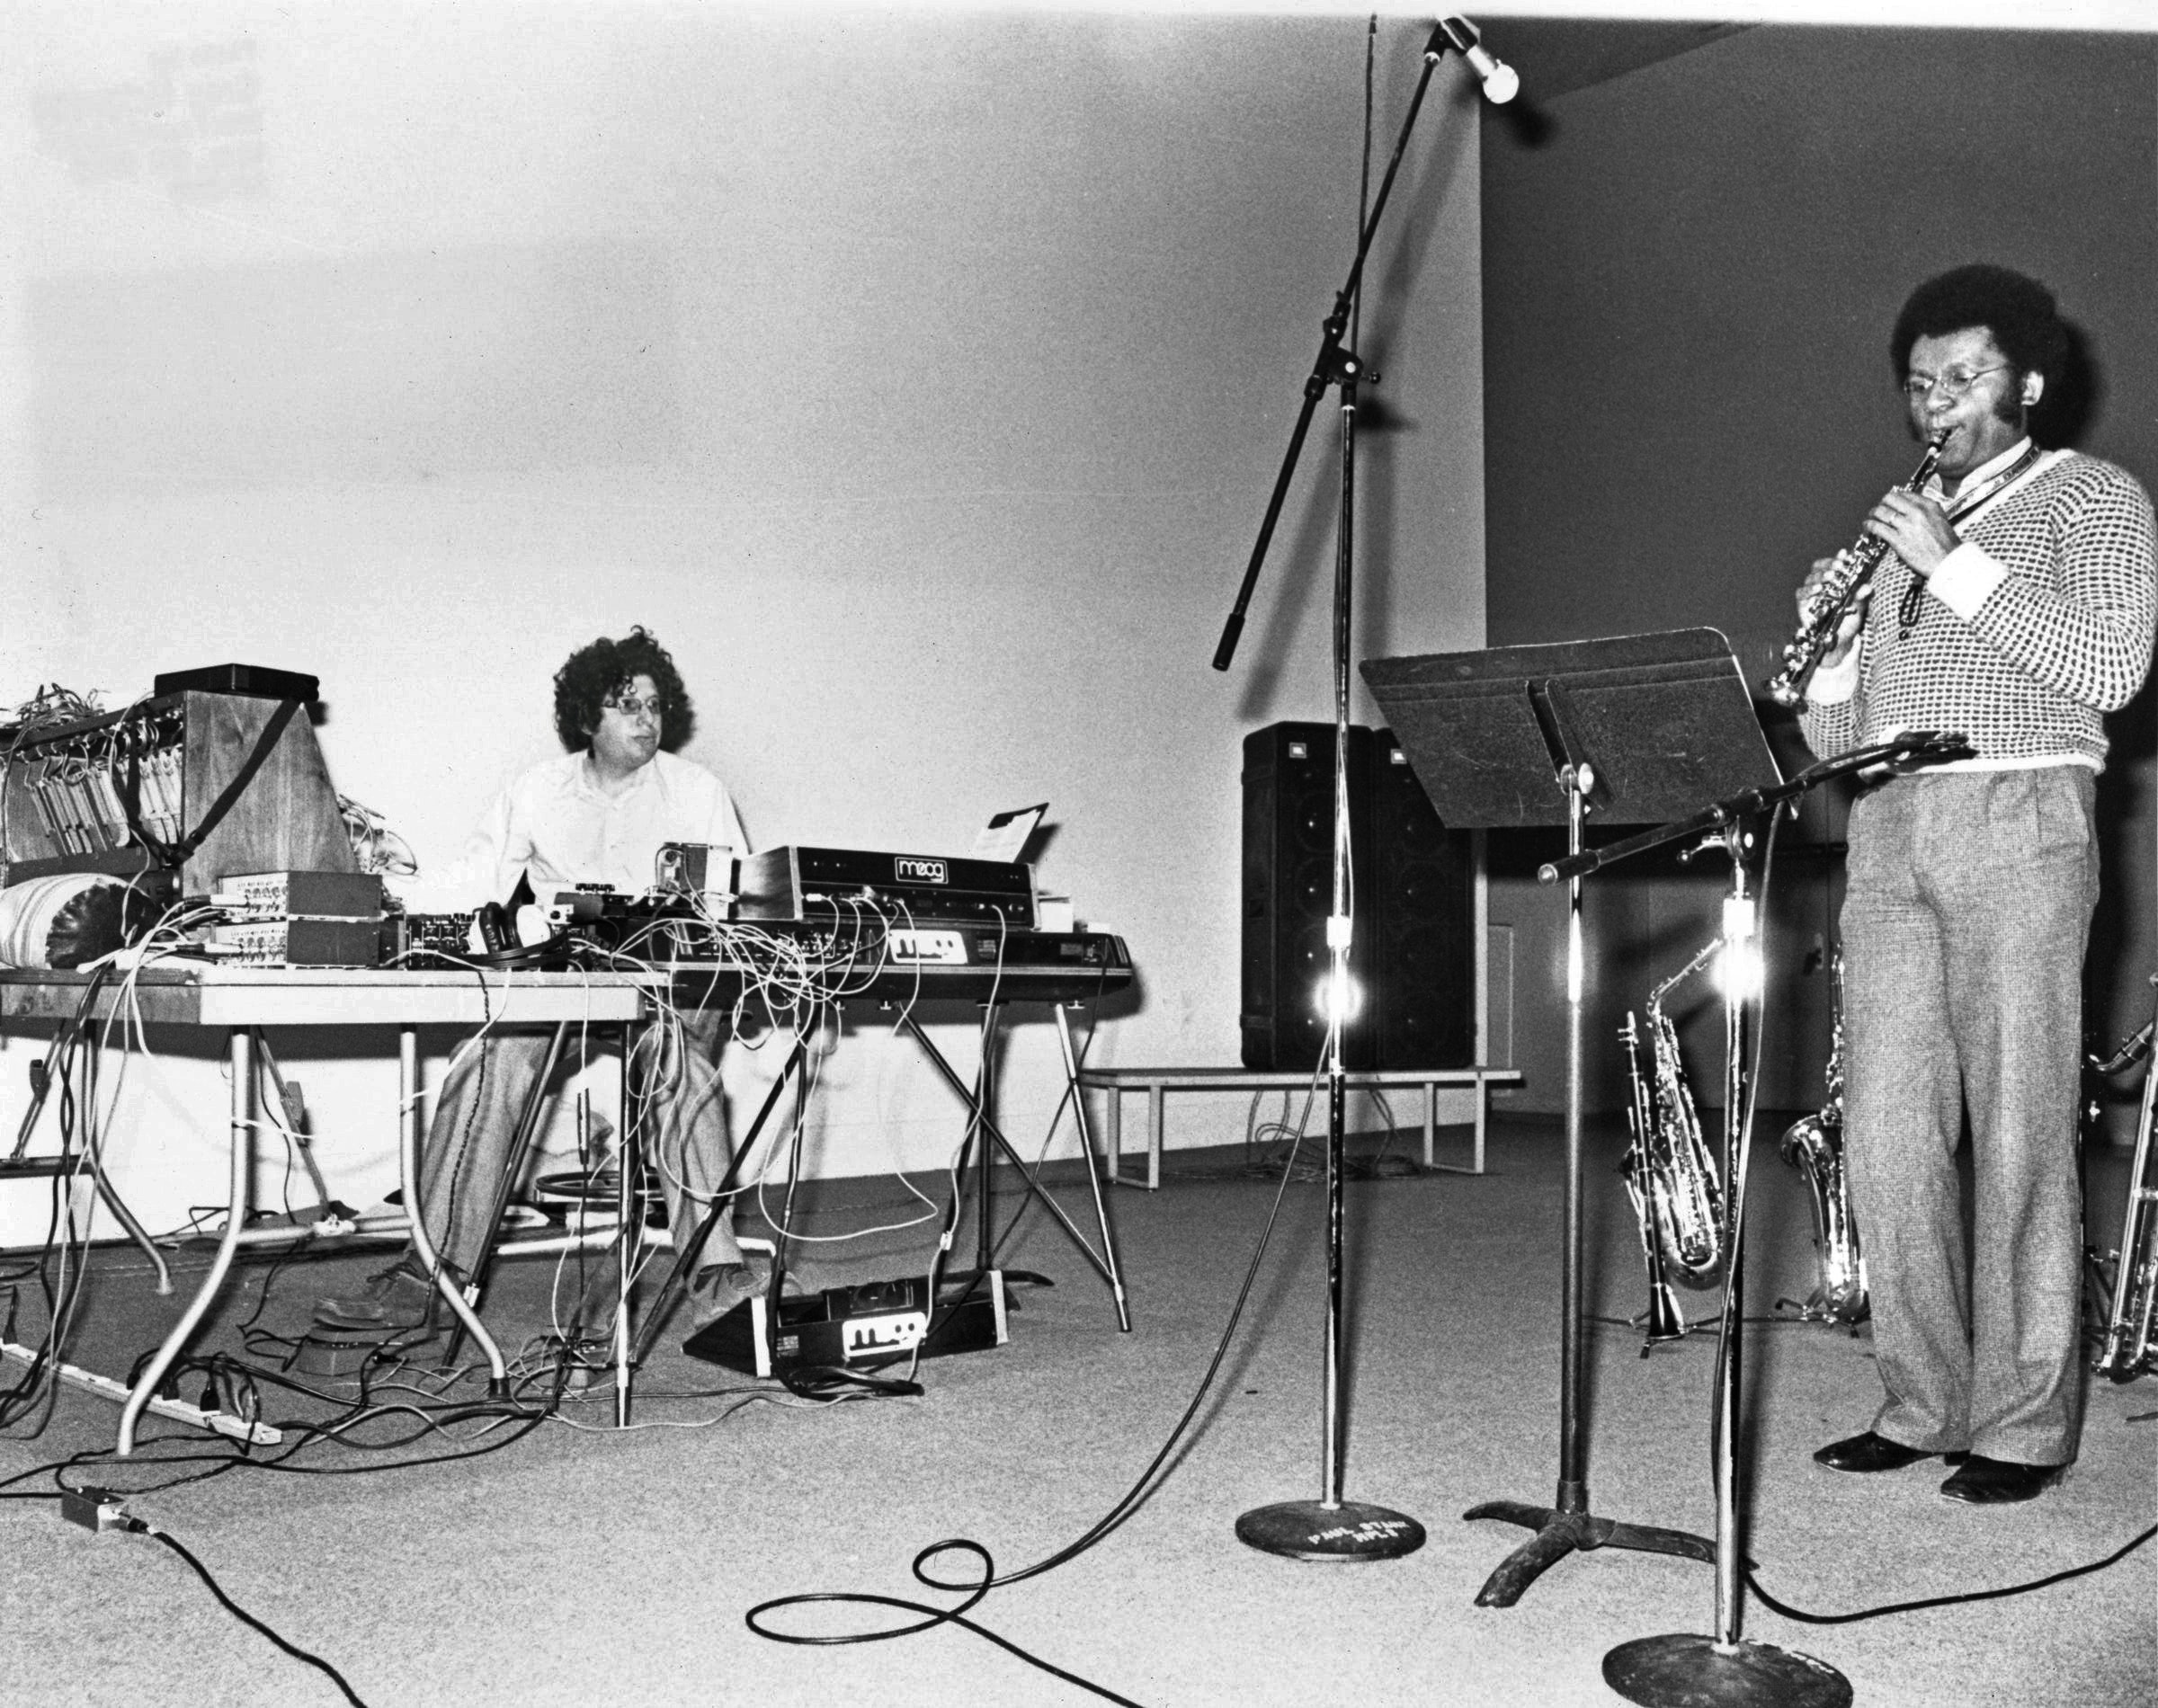 Anthony Braxton and Richard Teitelbaum performing on stage